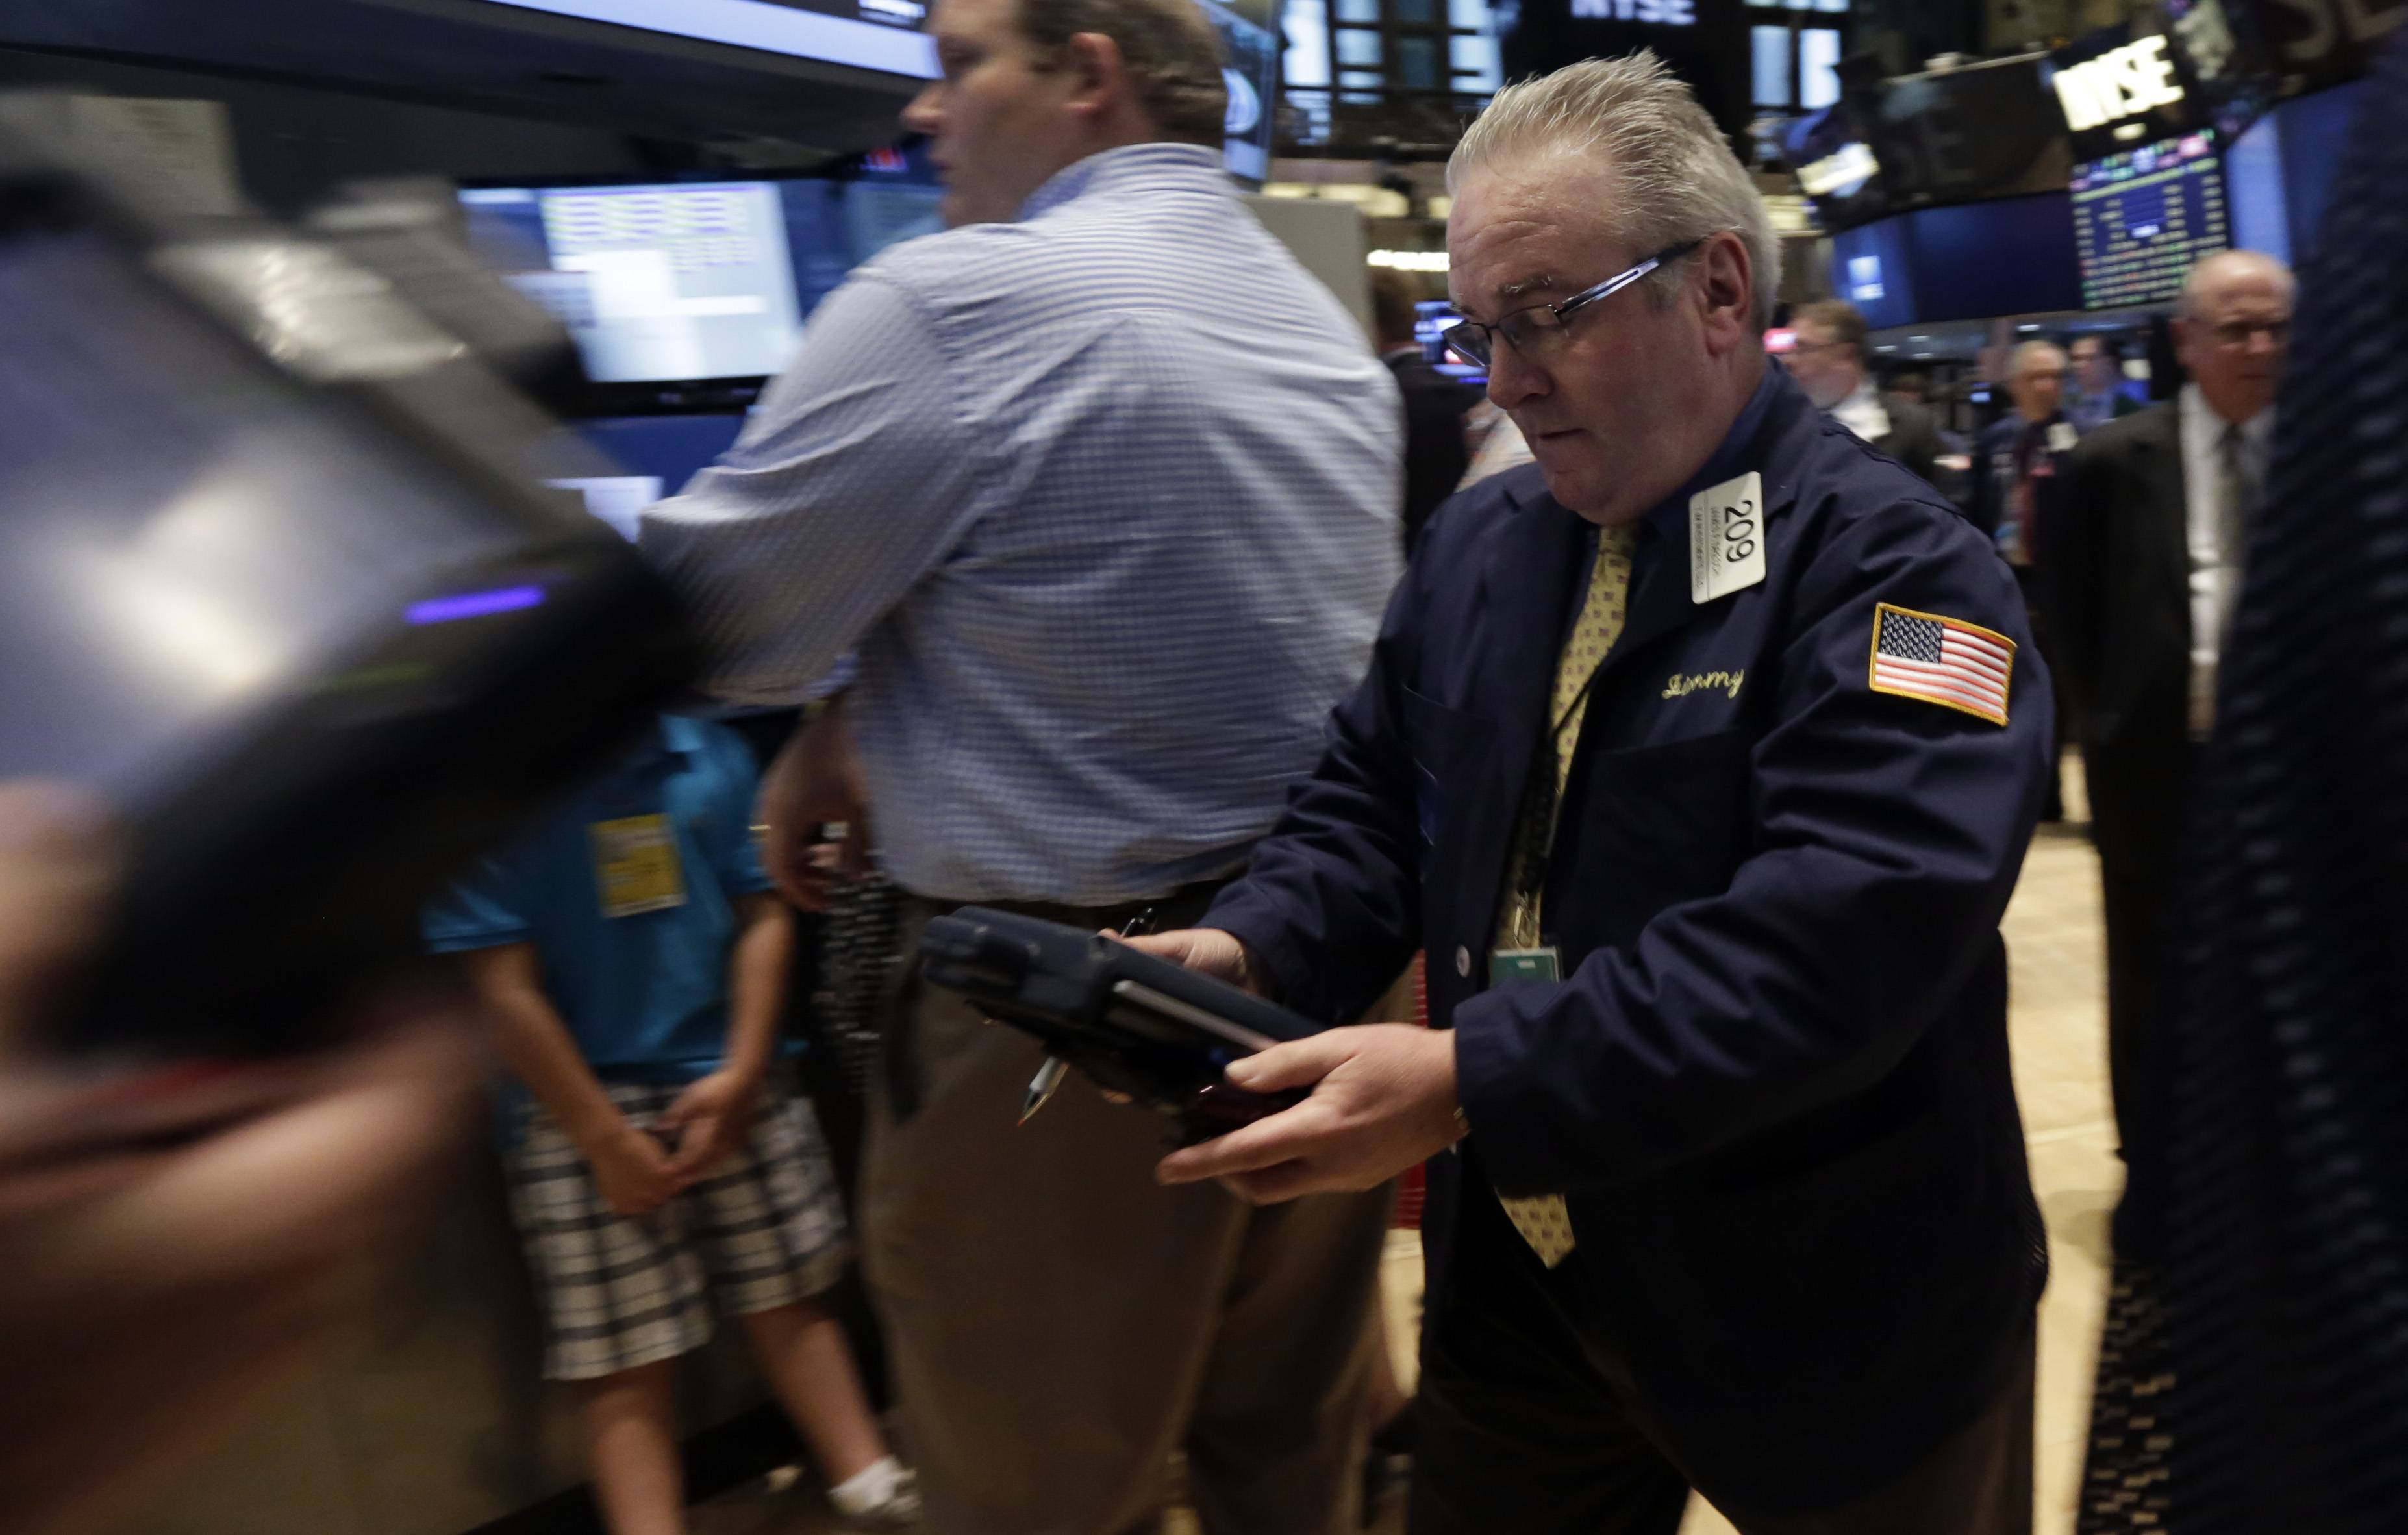 U.S. stocks were little changed Wednesday as data showing better-than-forecast economic growth was offset by weaker earnings and the Federal Reserve's decision to keep trimming asset purchases.